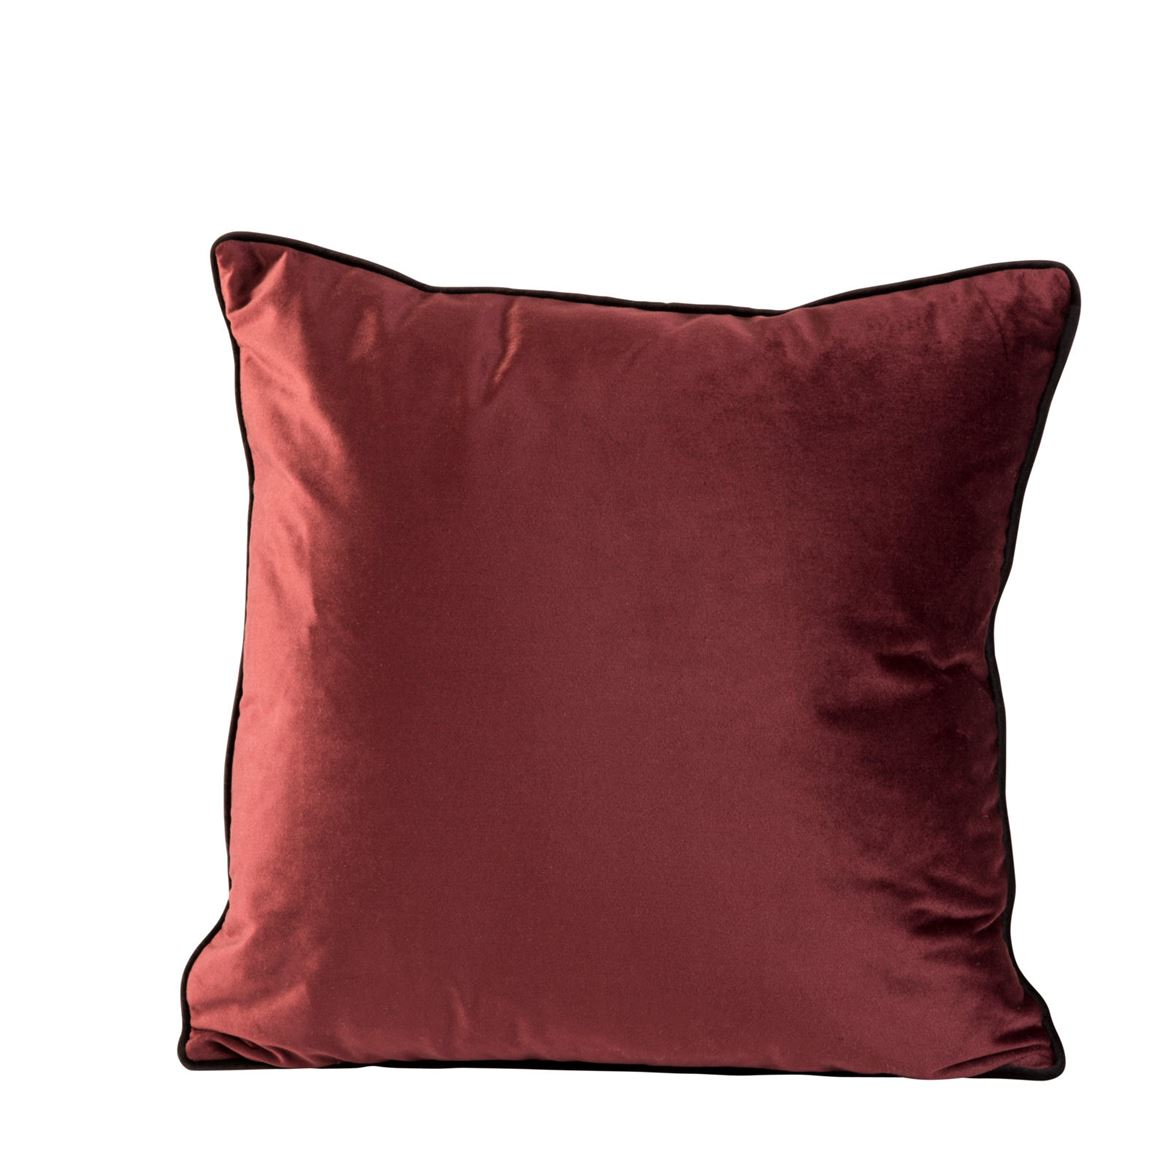 PIPER Coussin rouge Larg. 45 x Long. 45 cm_piper-coussin-rouge-larg--45-x-long--45-cm